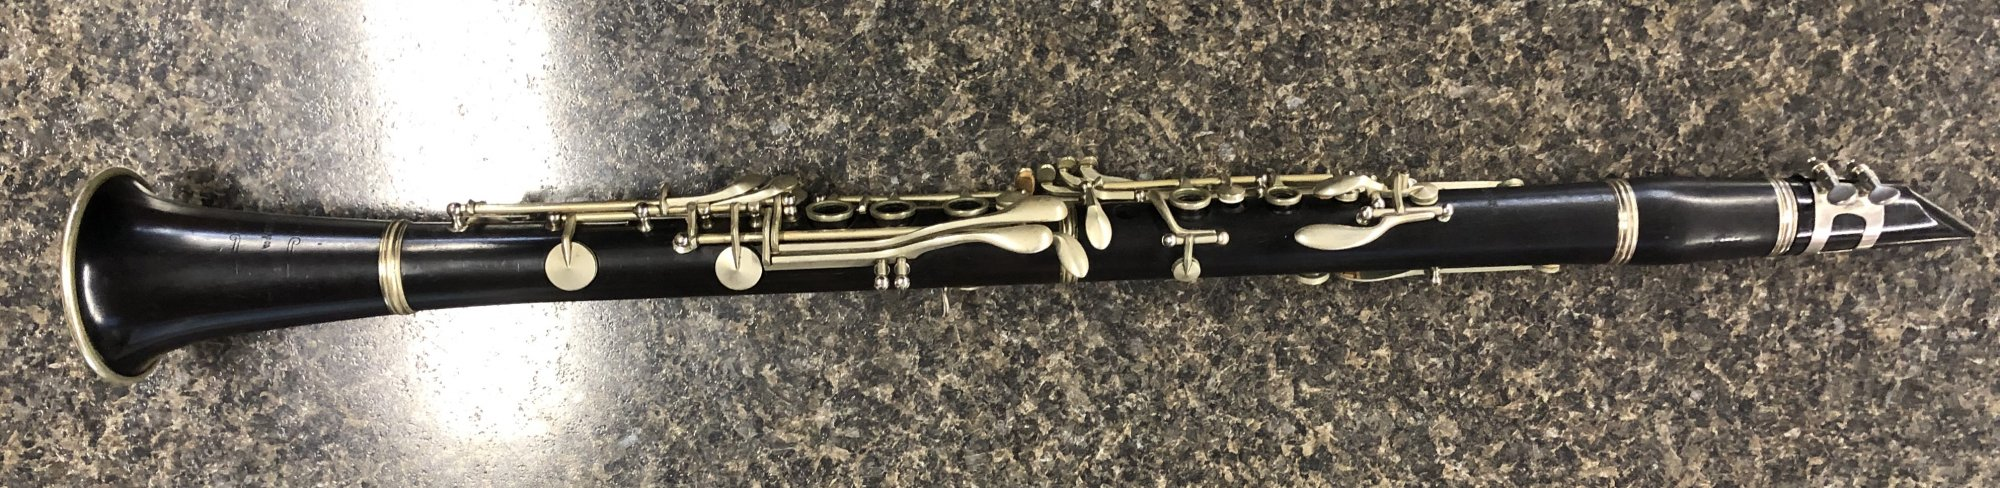 Woodwind Co Clarinet 1950s Wood